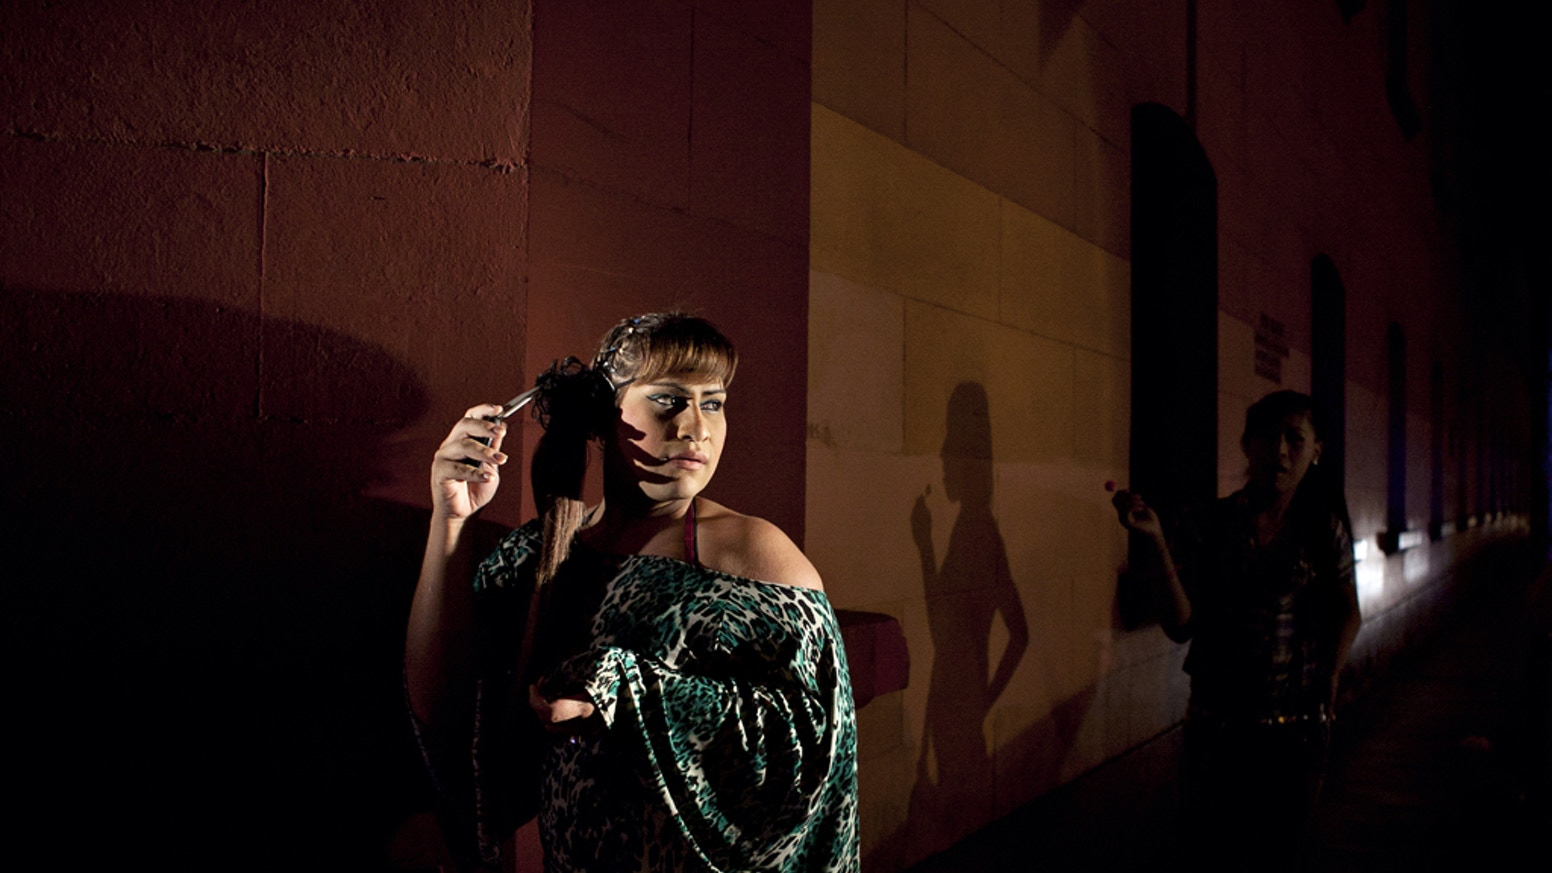 """A Light Inside"" by Danielle Villasana: A photo book documenting the lives of transgender women in Latin America."